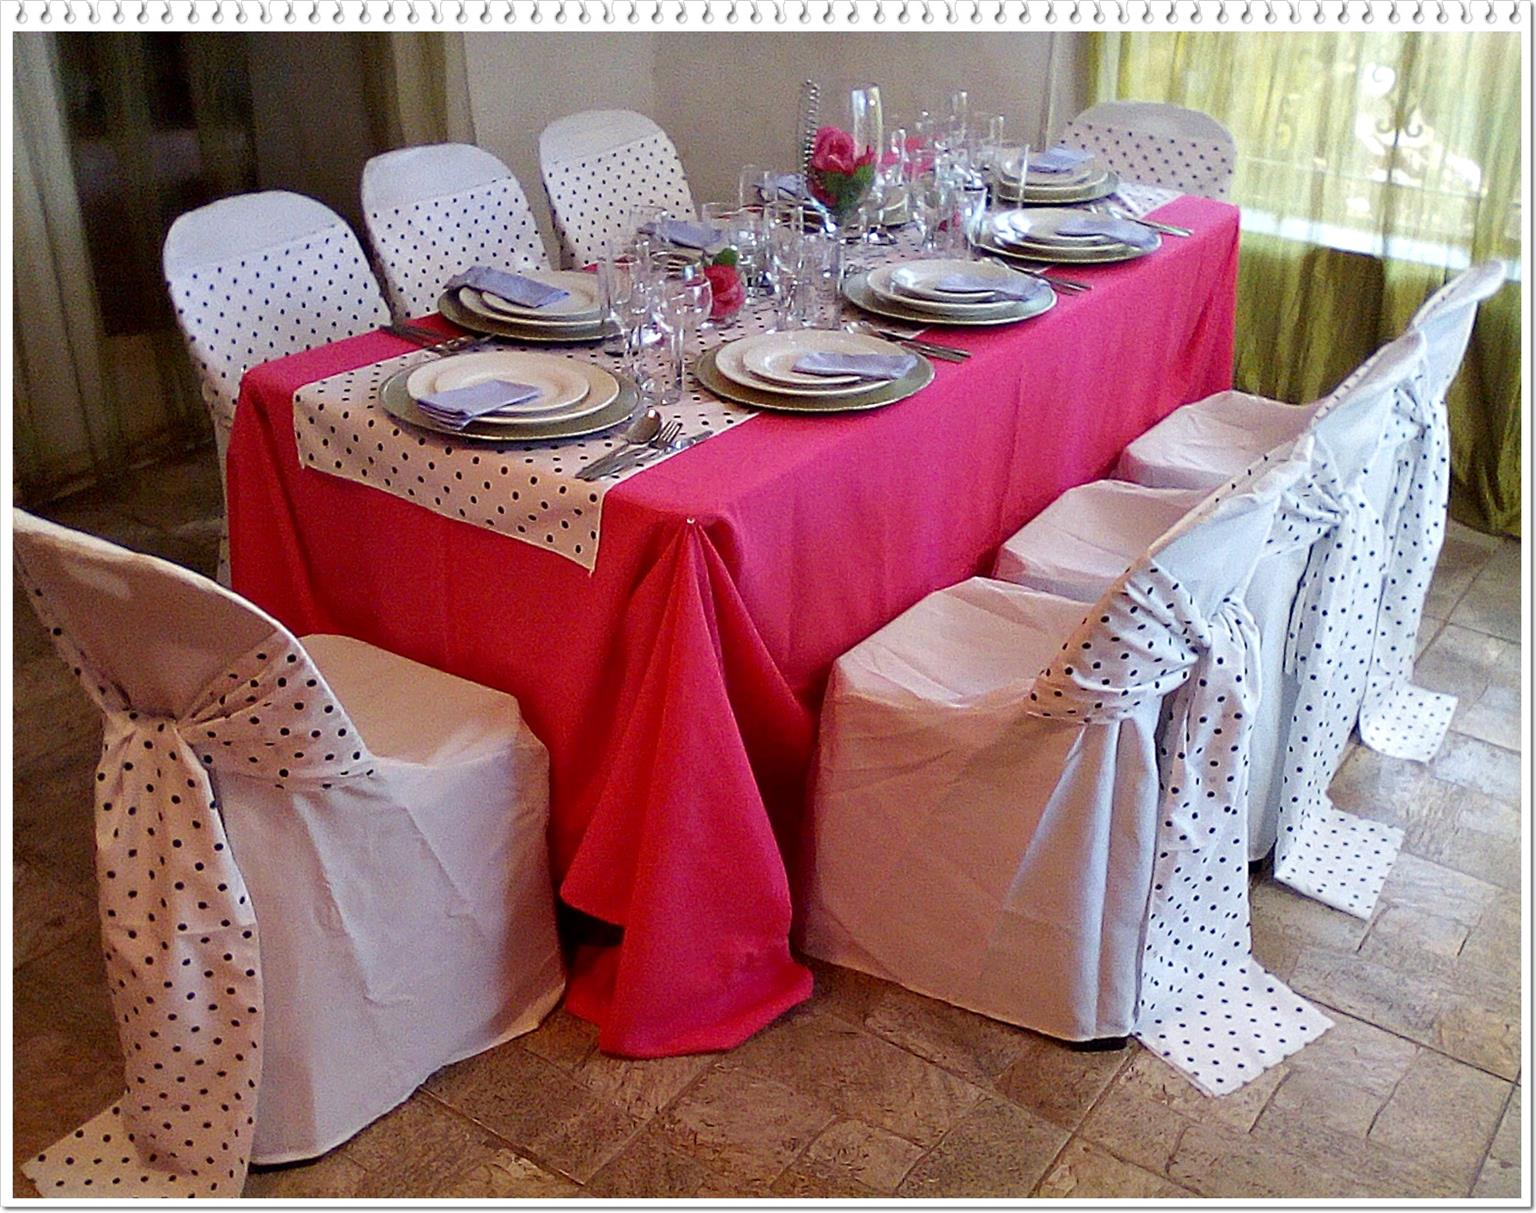 Wedding party decor hire budget prices quality items randburg wedding party decor hire budget prices quality items randburg junglespirit Gallery